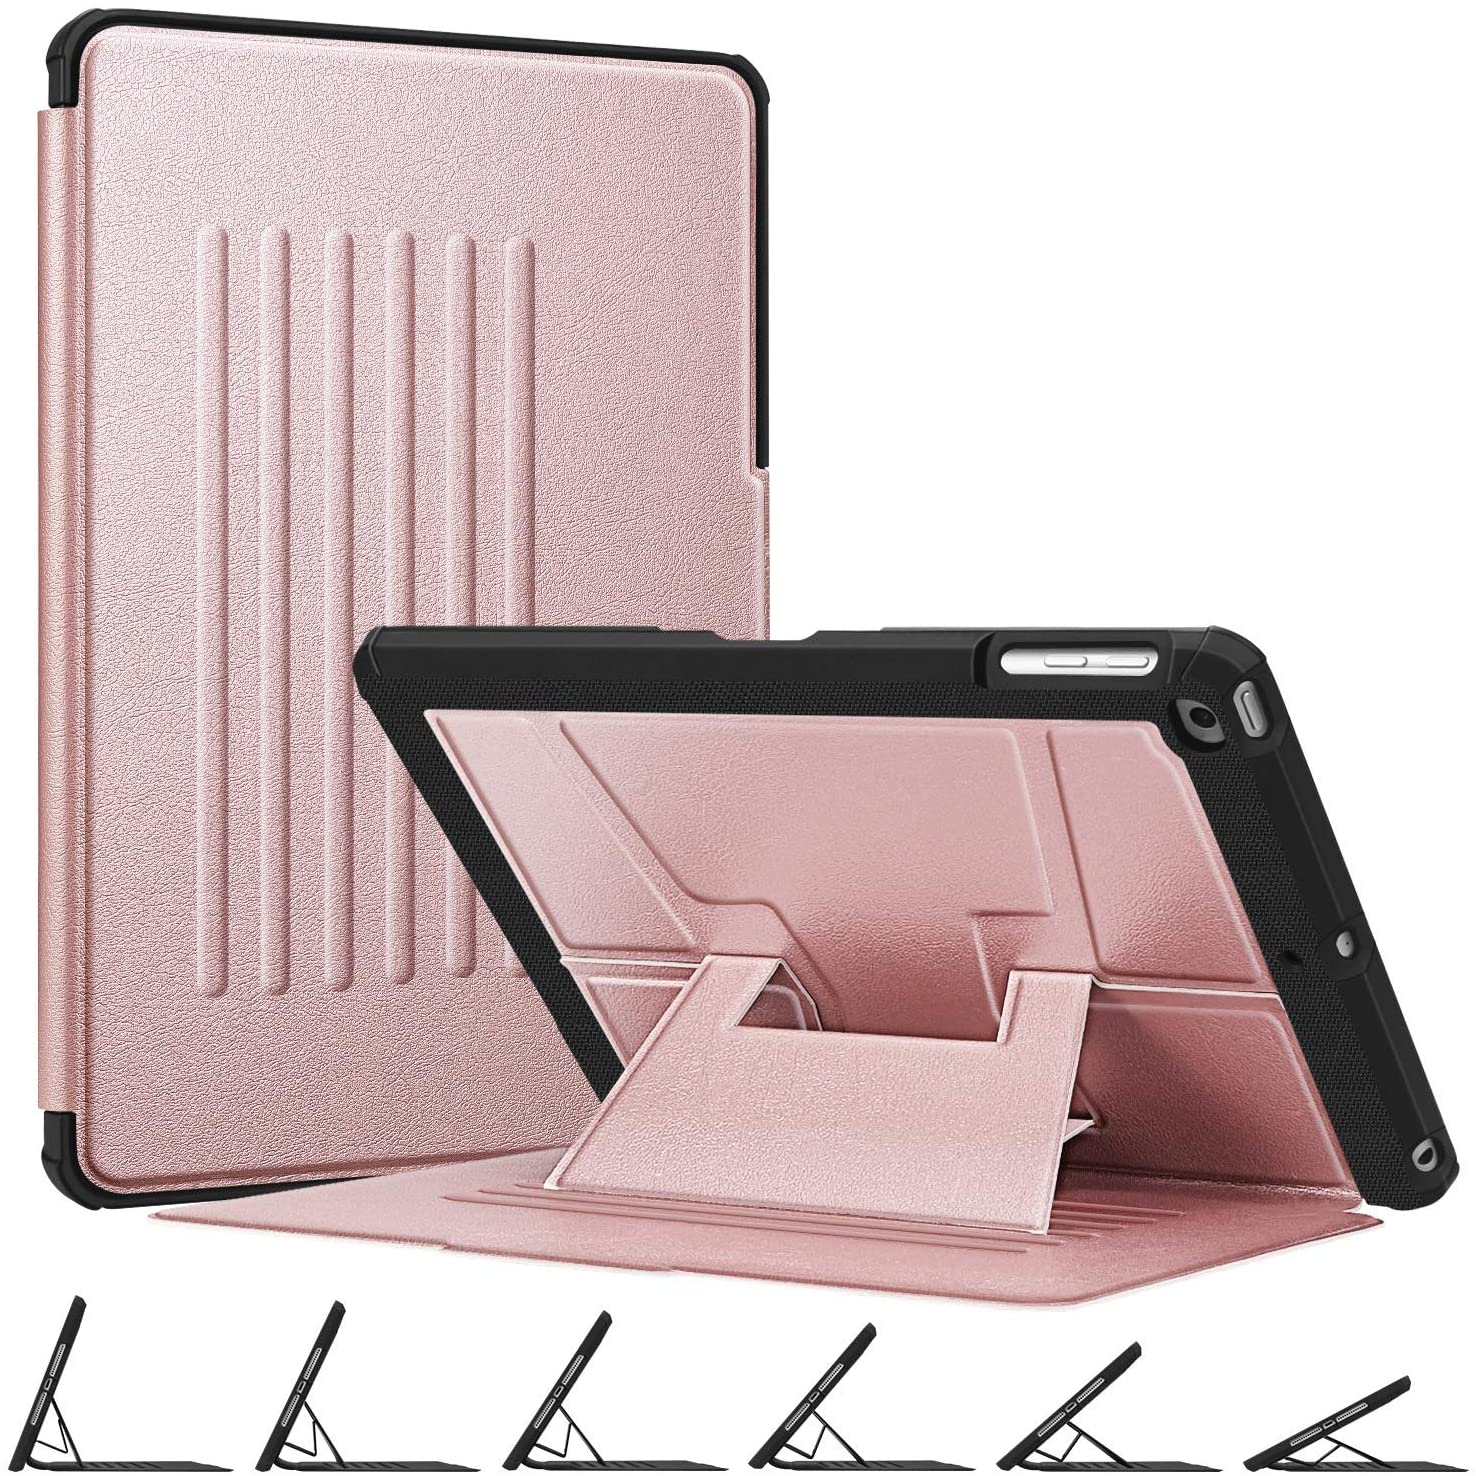 Fintie Magnetic Stand Case for iPad 6th / 5th Generation - [Multiple Secure Angles] Shockproof Rugged Soft TPU Back Cover for iPad 9.7 2018 2017 / iPad Air 2 / iPad Air, Auto Wake/Sleep, Rose Gold